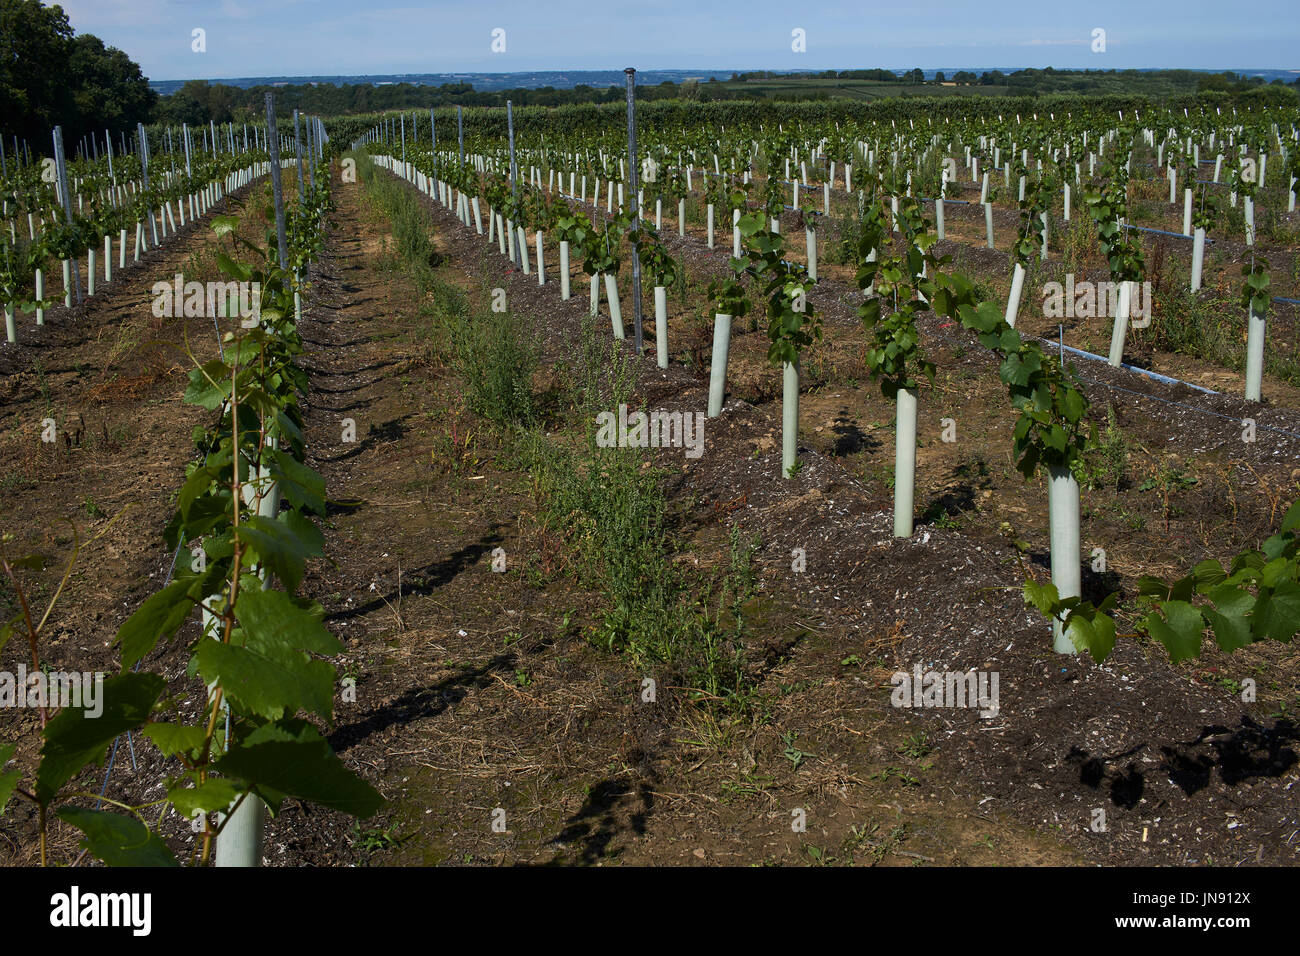 A view of a young vineyard in Kent - Stock Image